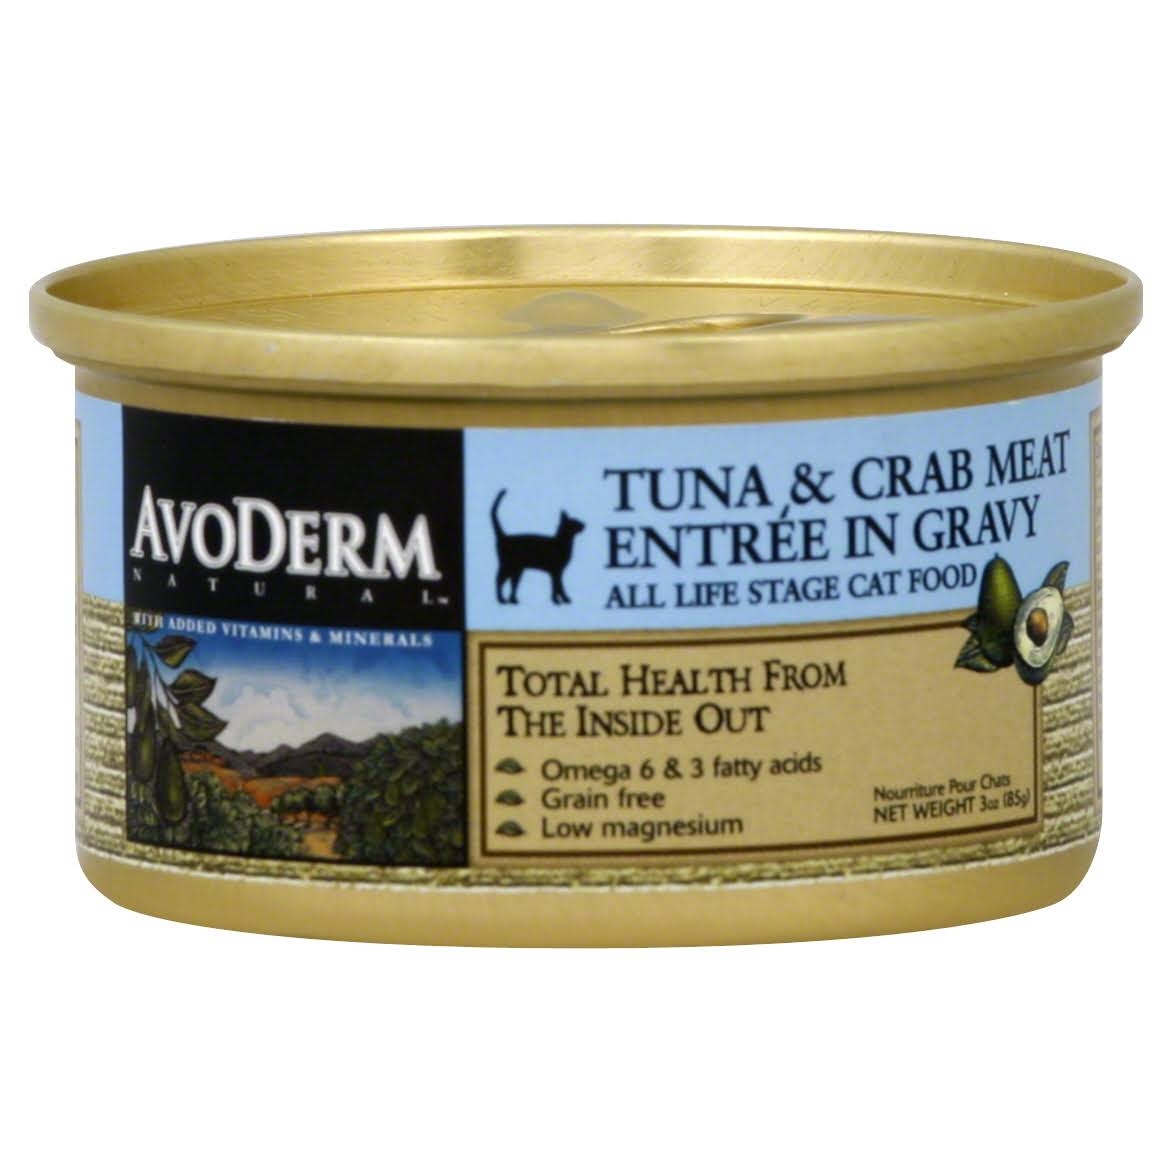 AvoDerm Naturals Canned Cat Food - Tuna and Crab Meat, 3oz